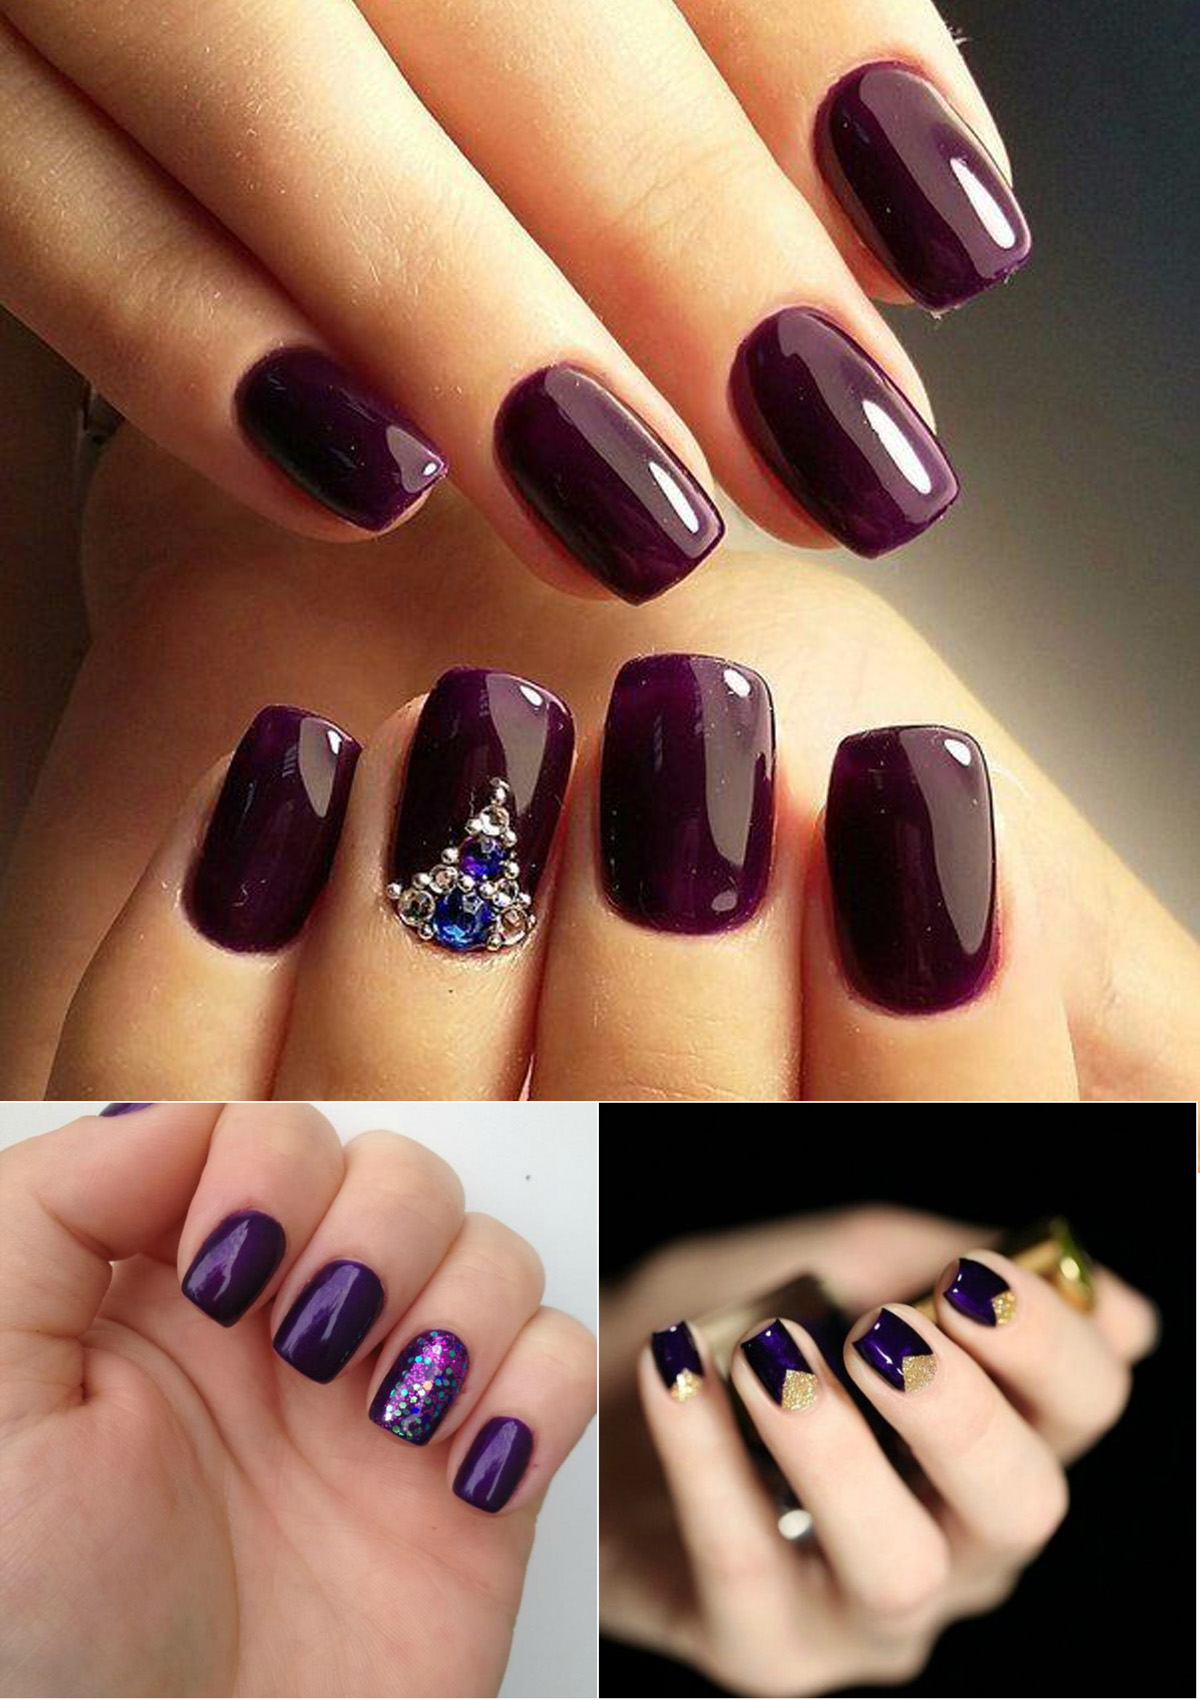 Try Fabulous Purple Nail Art Designs - Top Beauty Magazines